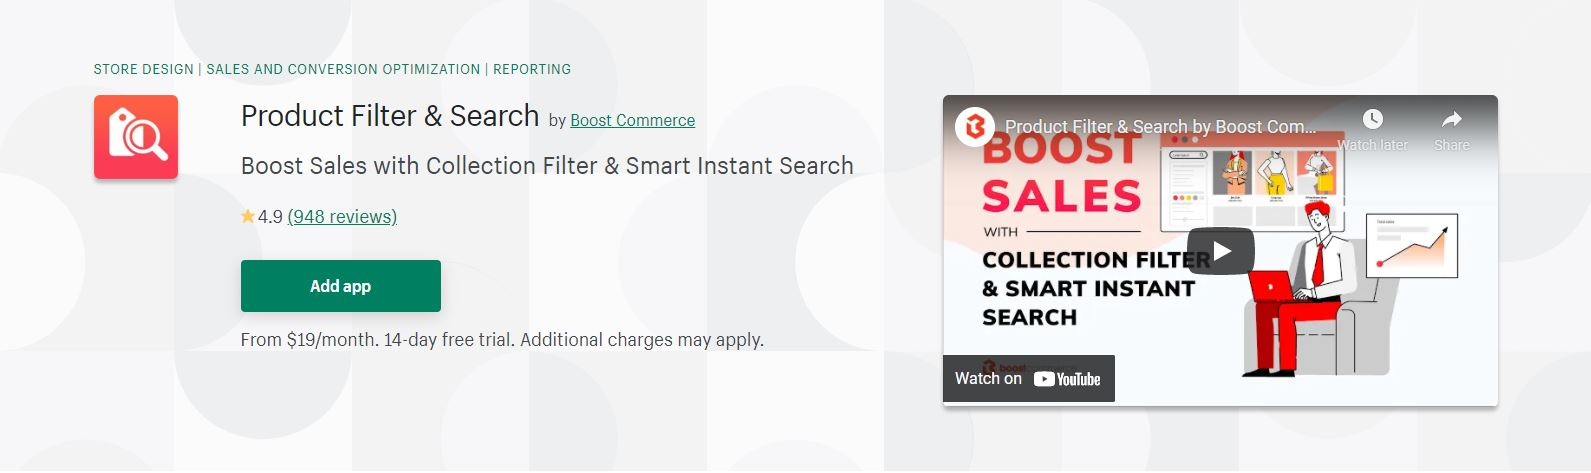 Product Filter & Search